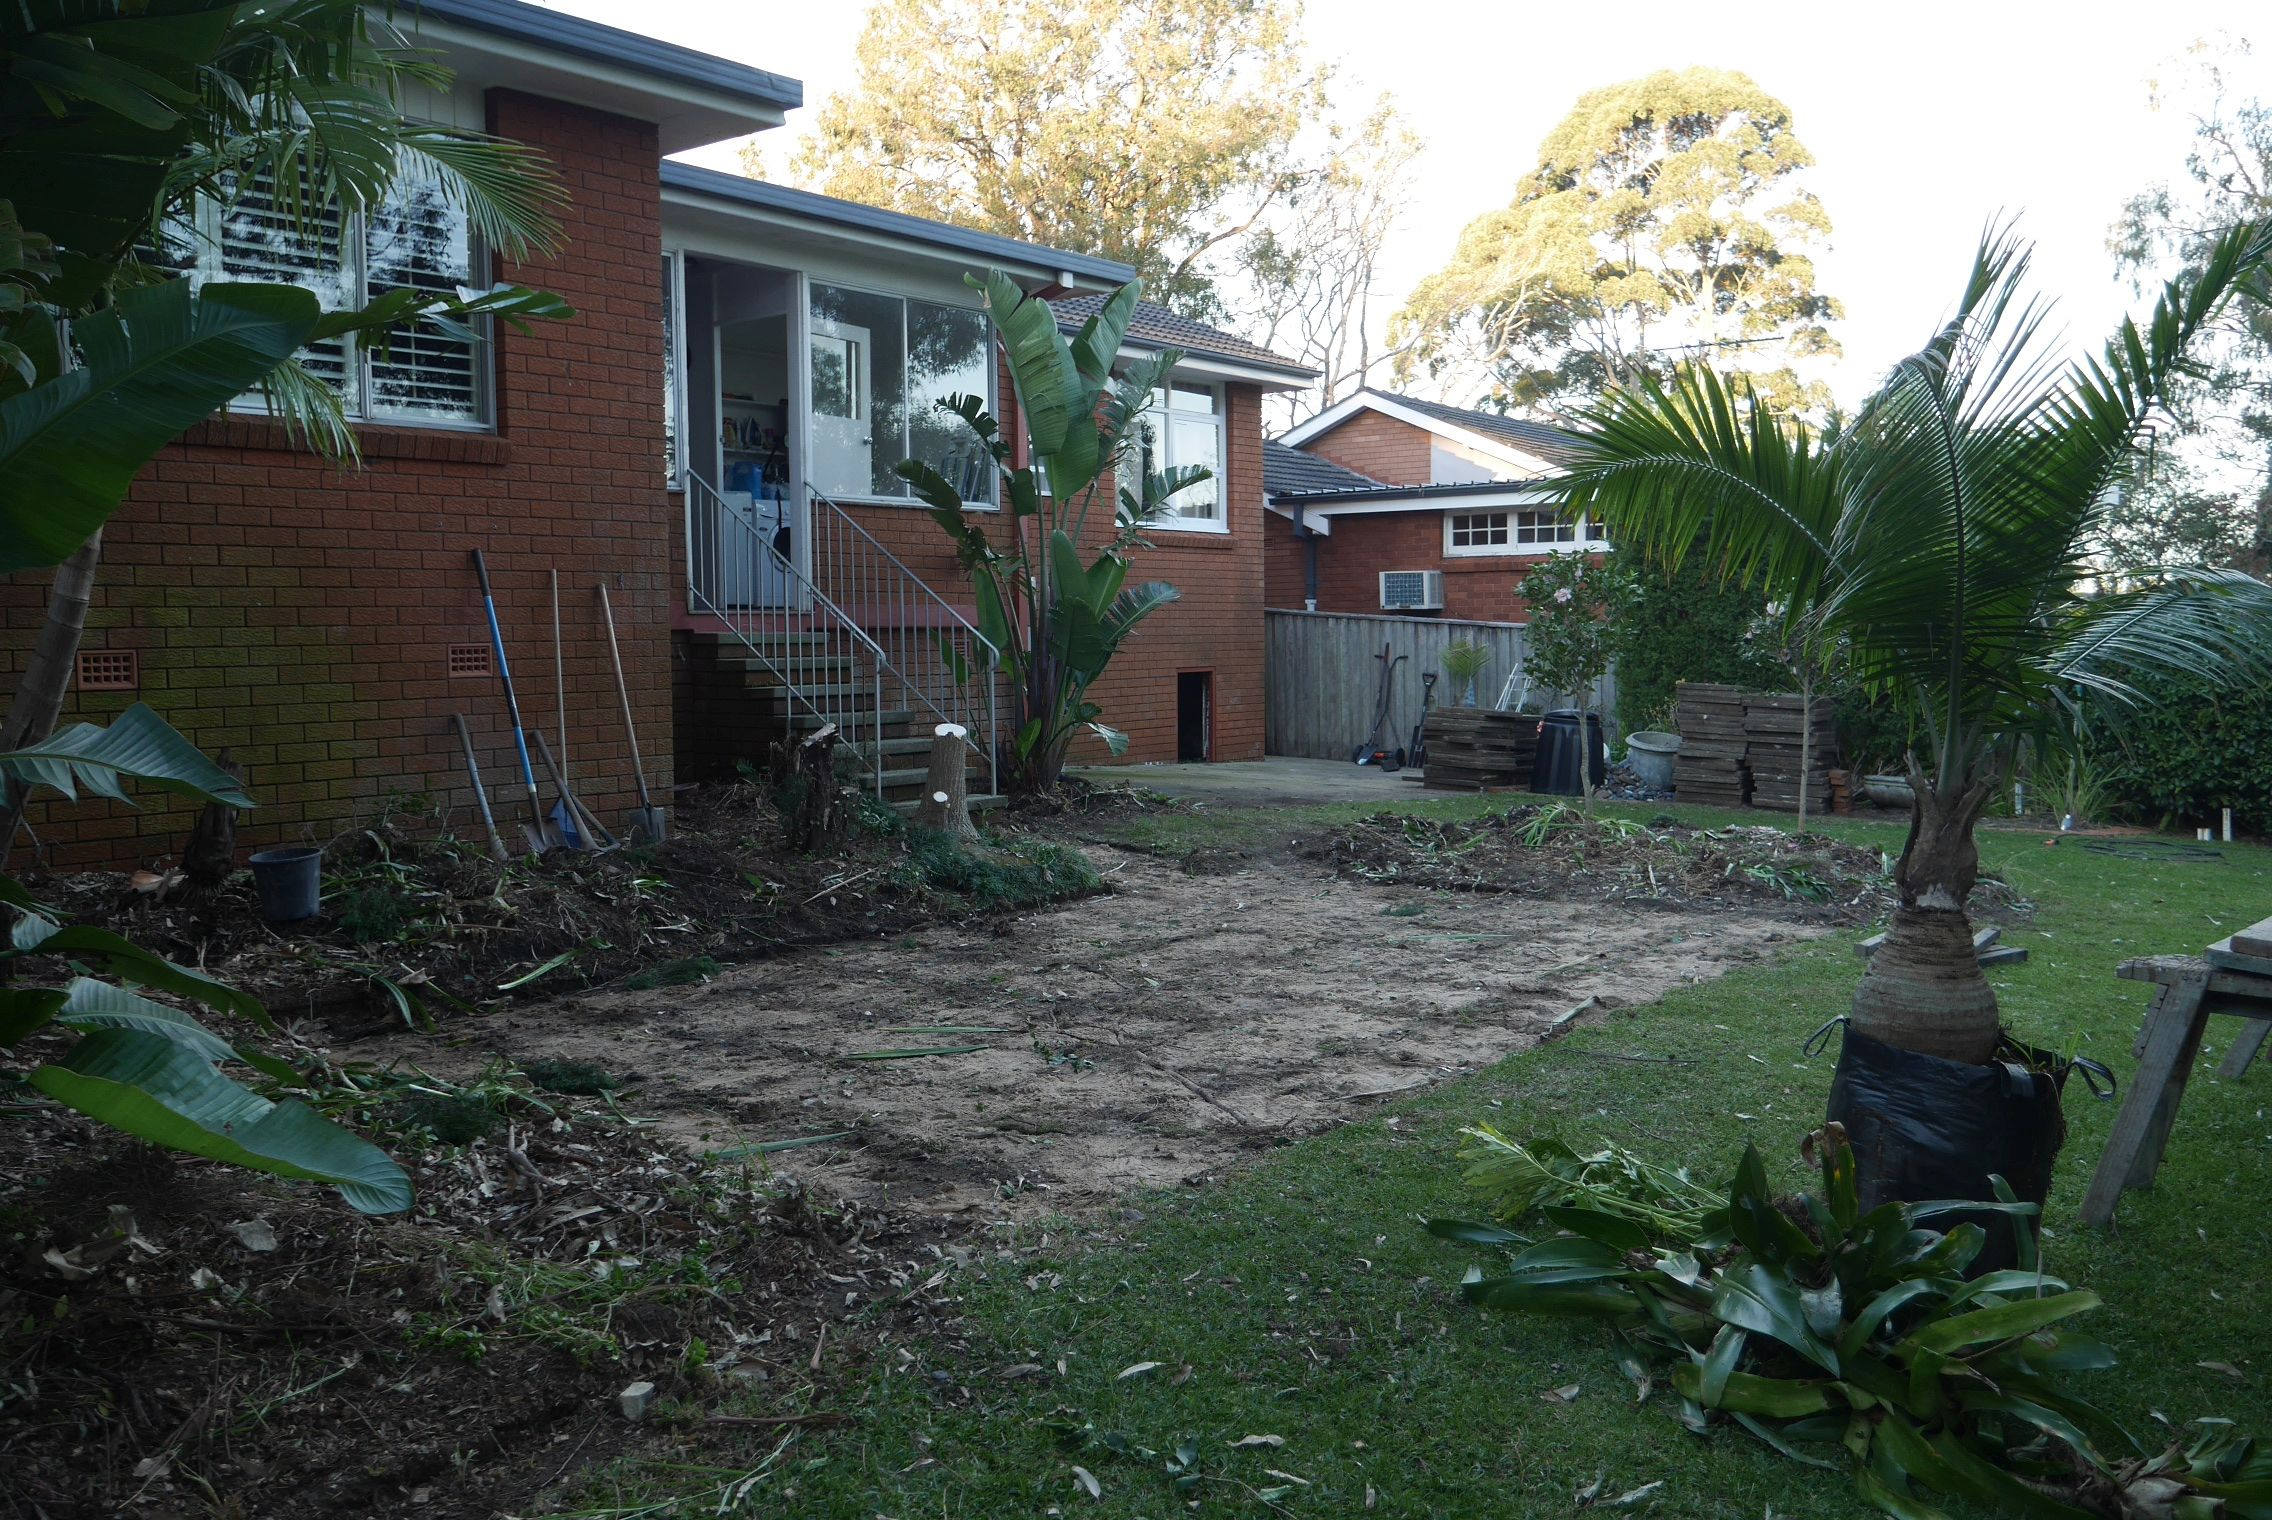 BEFORE Excavation: Plants in garden bed and concrete pavers are removed